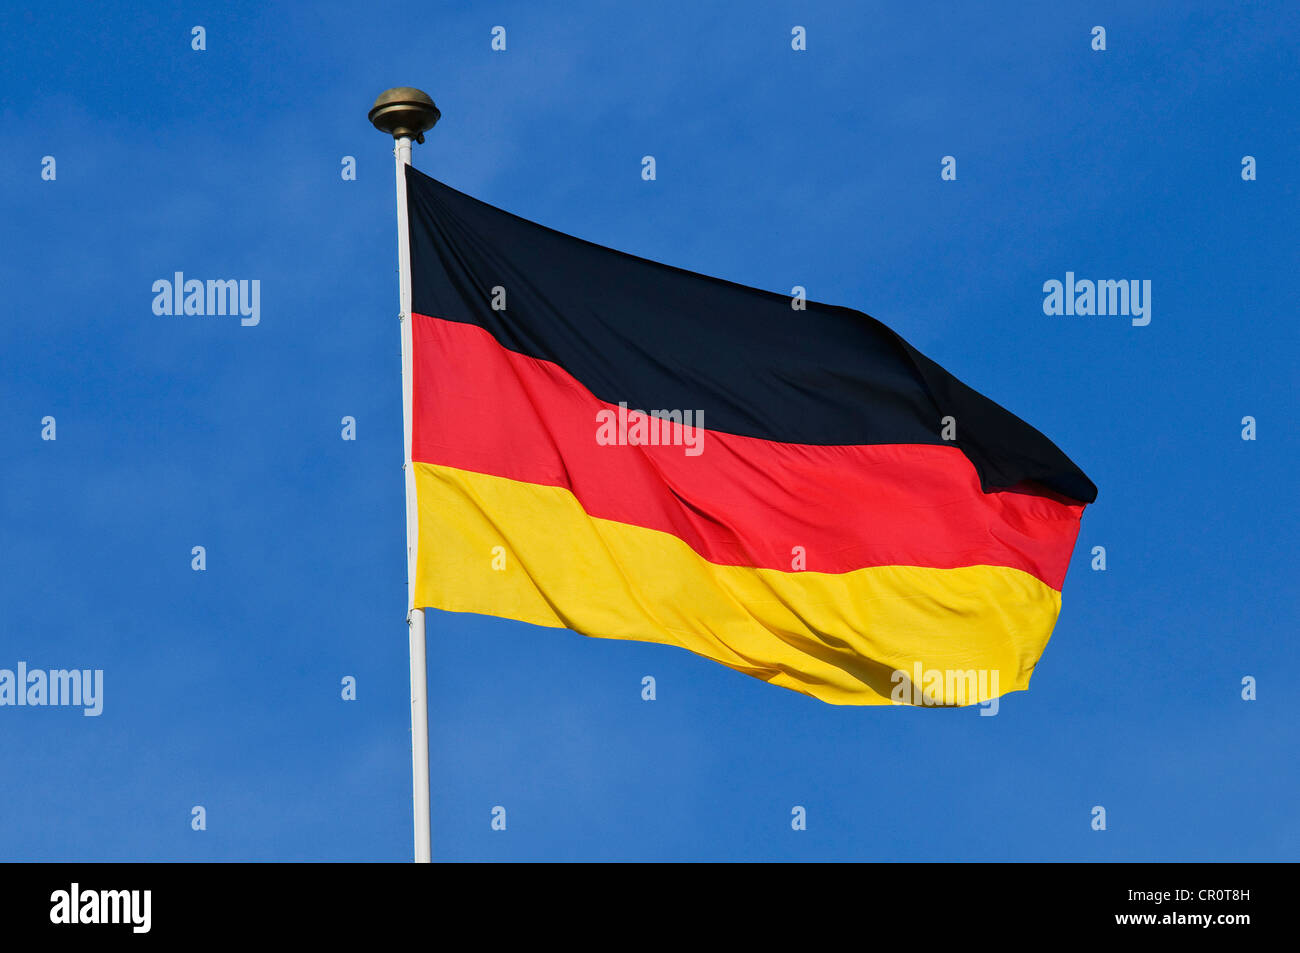 Drapeau national allemand contre le ciel bleu Photo Stock